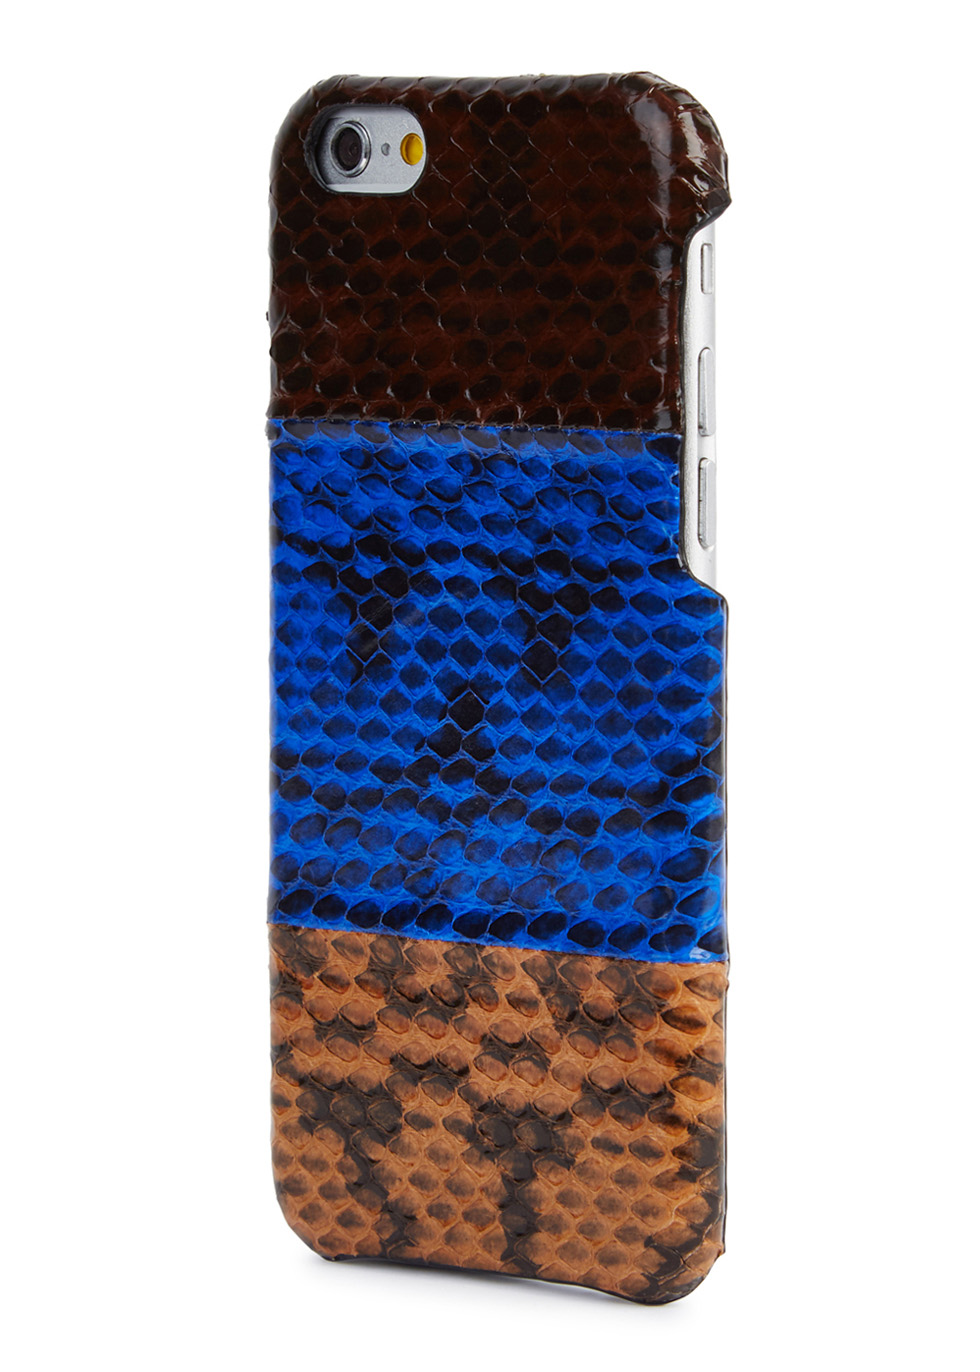 Watersnake iPhone 6/6S case - The Case Factory